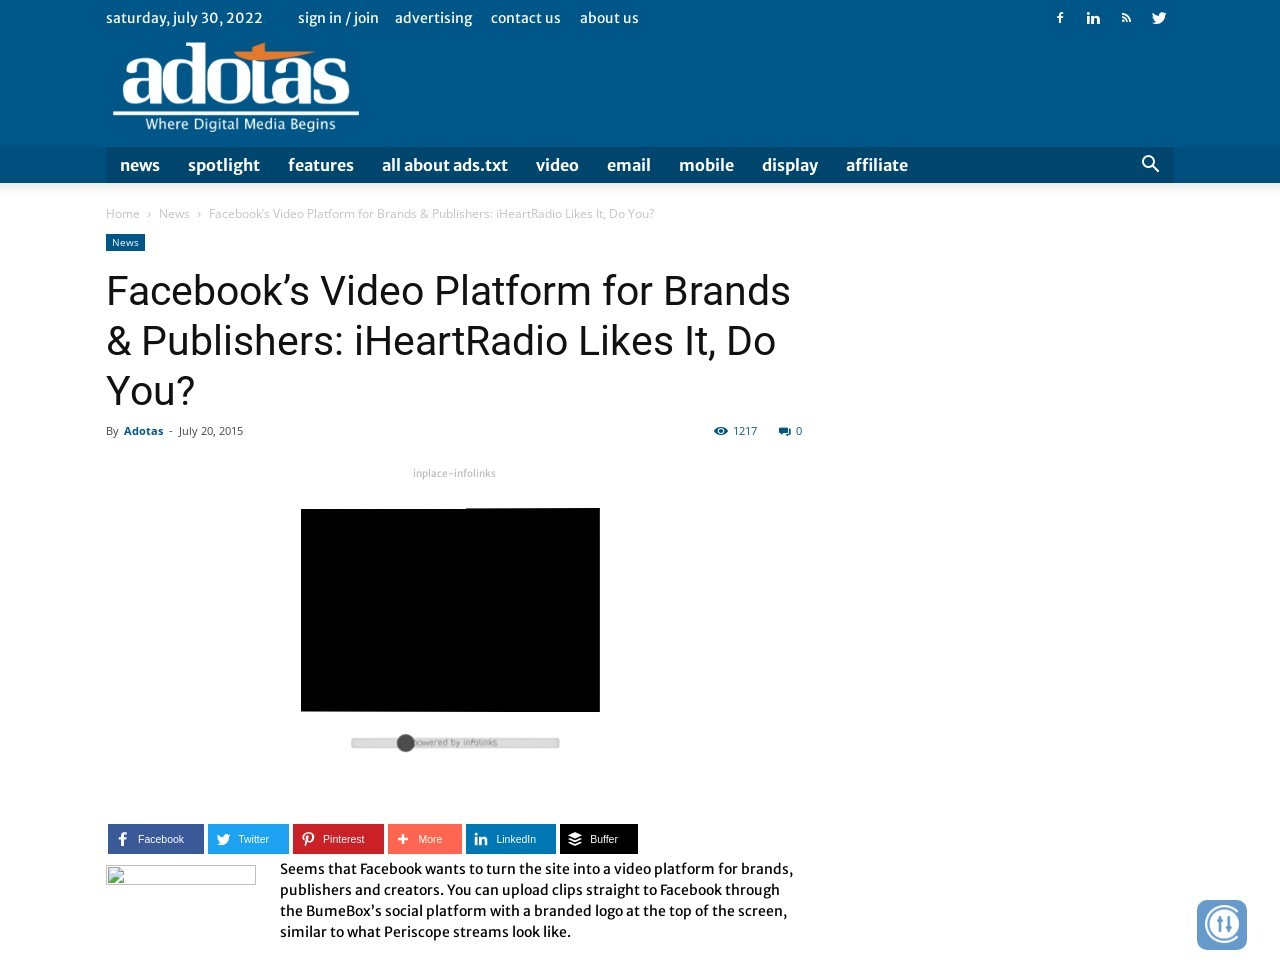 Facebook's Video Platform for Brands & Publishers: iHeartRadio Likes It, Do You?